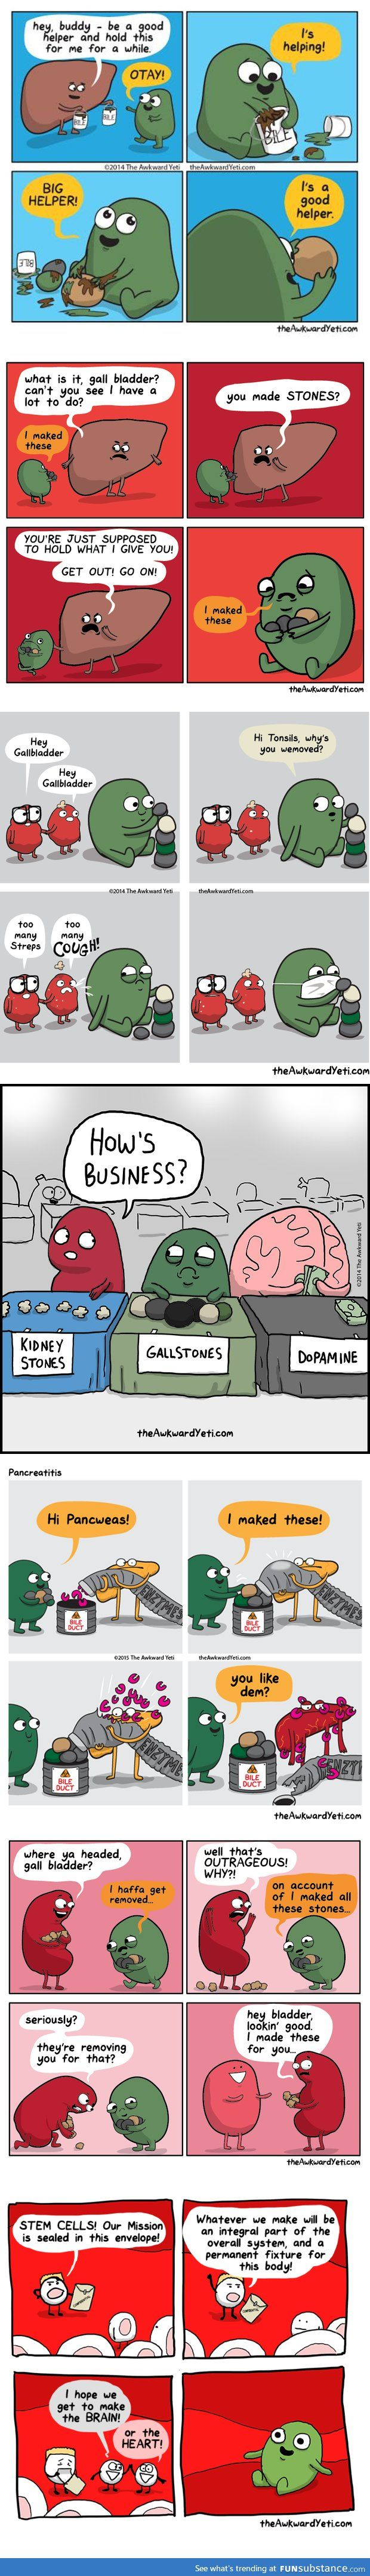 The Story of Gallbladder---why is this what I find hilarious??